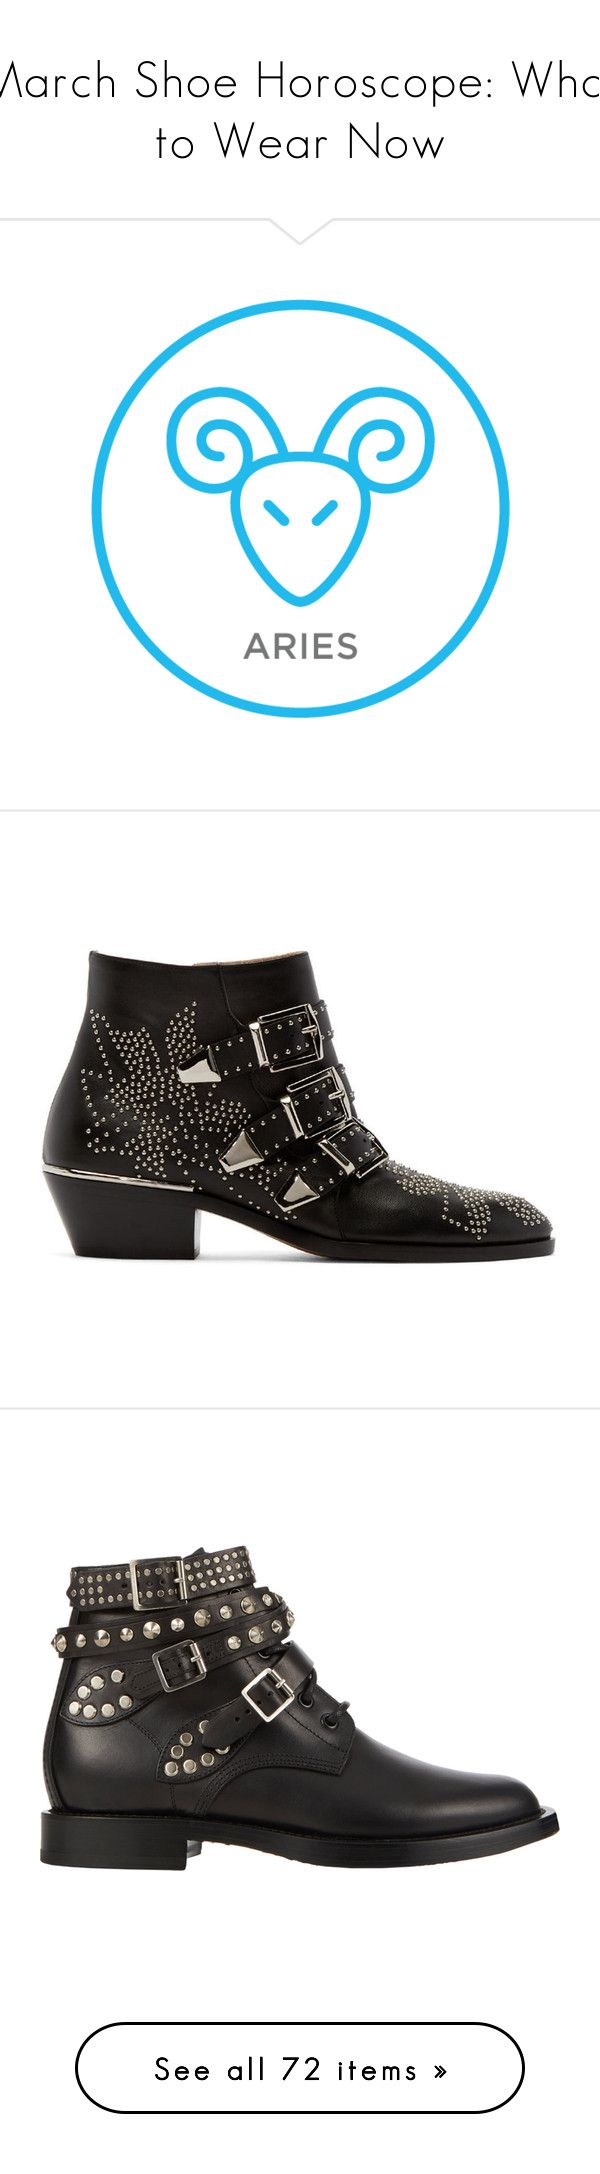 """""""March Shoe Horoscope: What to Wear Now"""" by polyvore-editorial ❤ liked on Polyvore featuring shoes, Horoscope, boots, ankle booties, studded booties, studded boots, zip boots, cuban heel boots, high ankle booties and botas"""